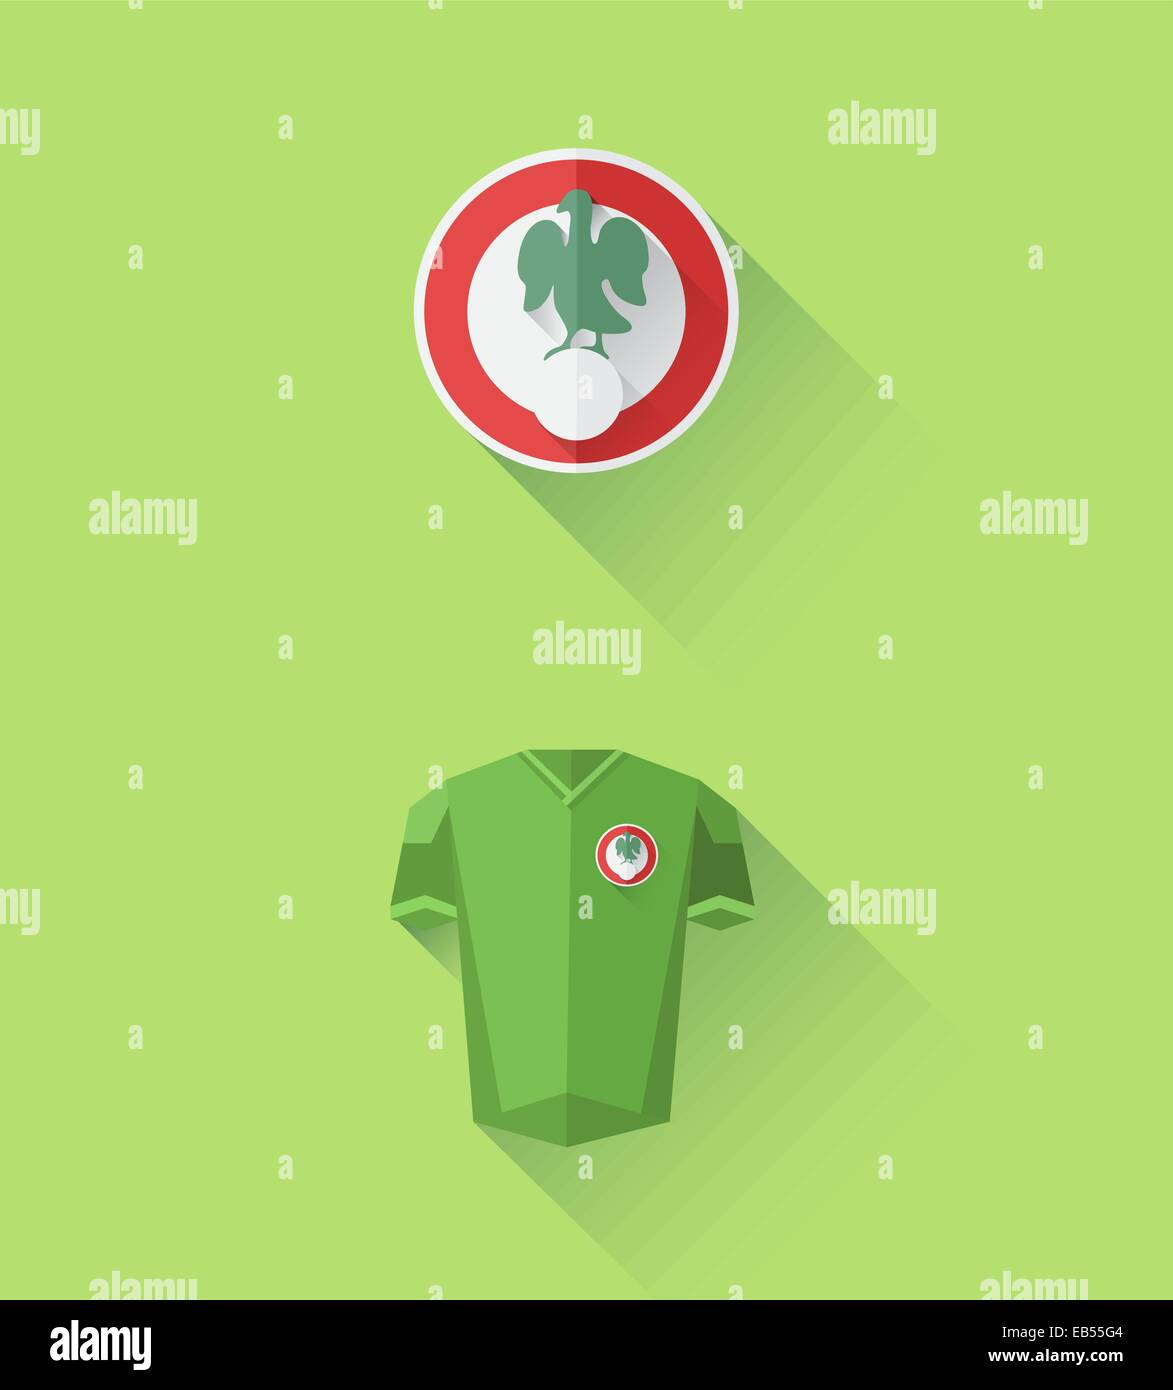 Nigeria jersey and crest vector - Stock Vector